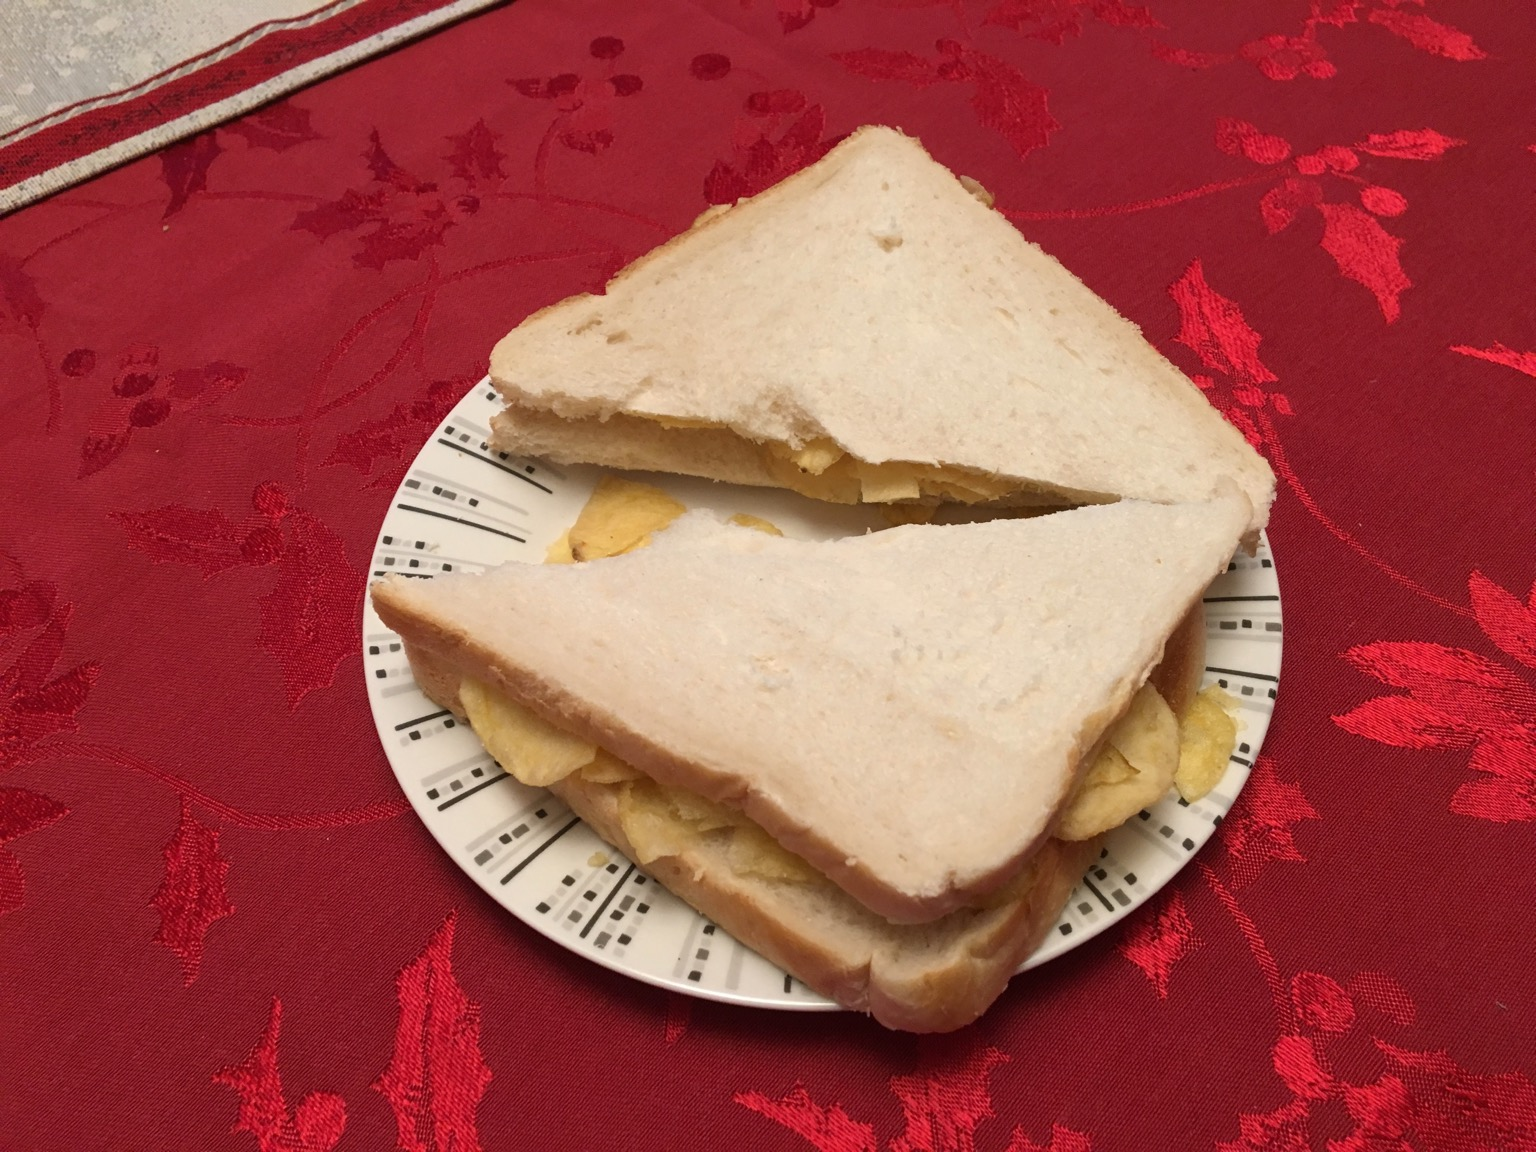 White crisp sandwich cut in half diagonally